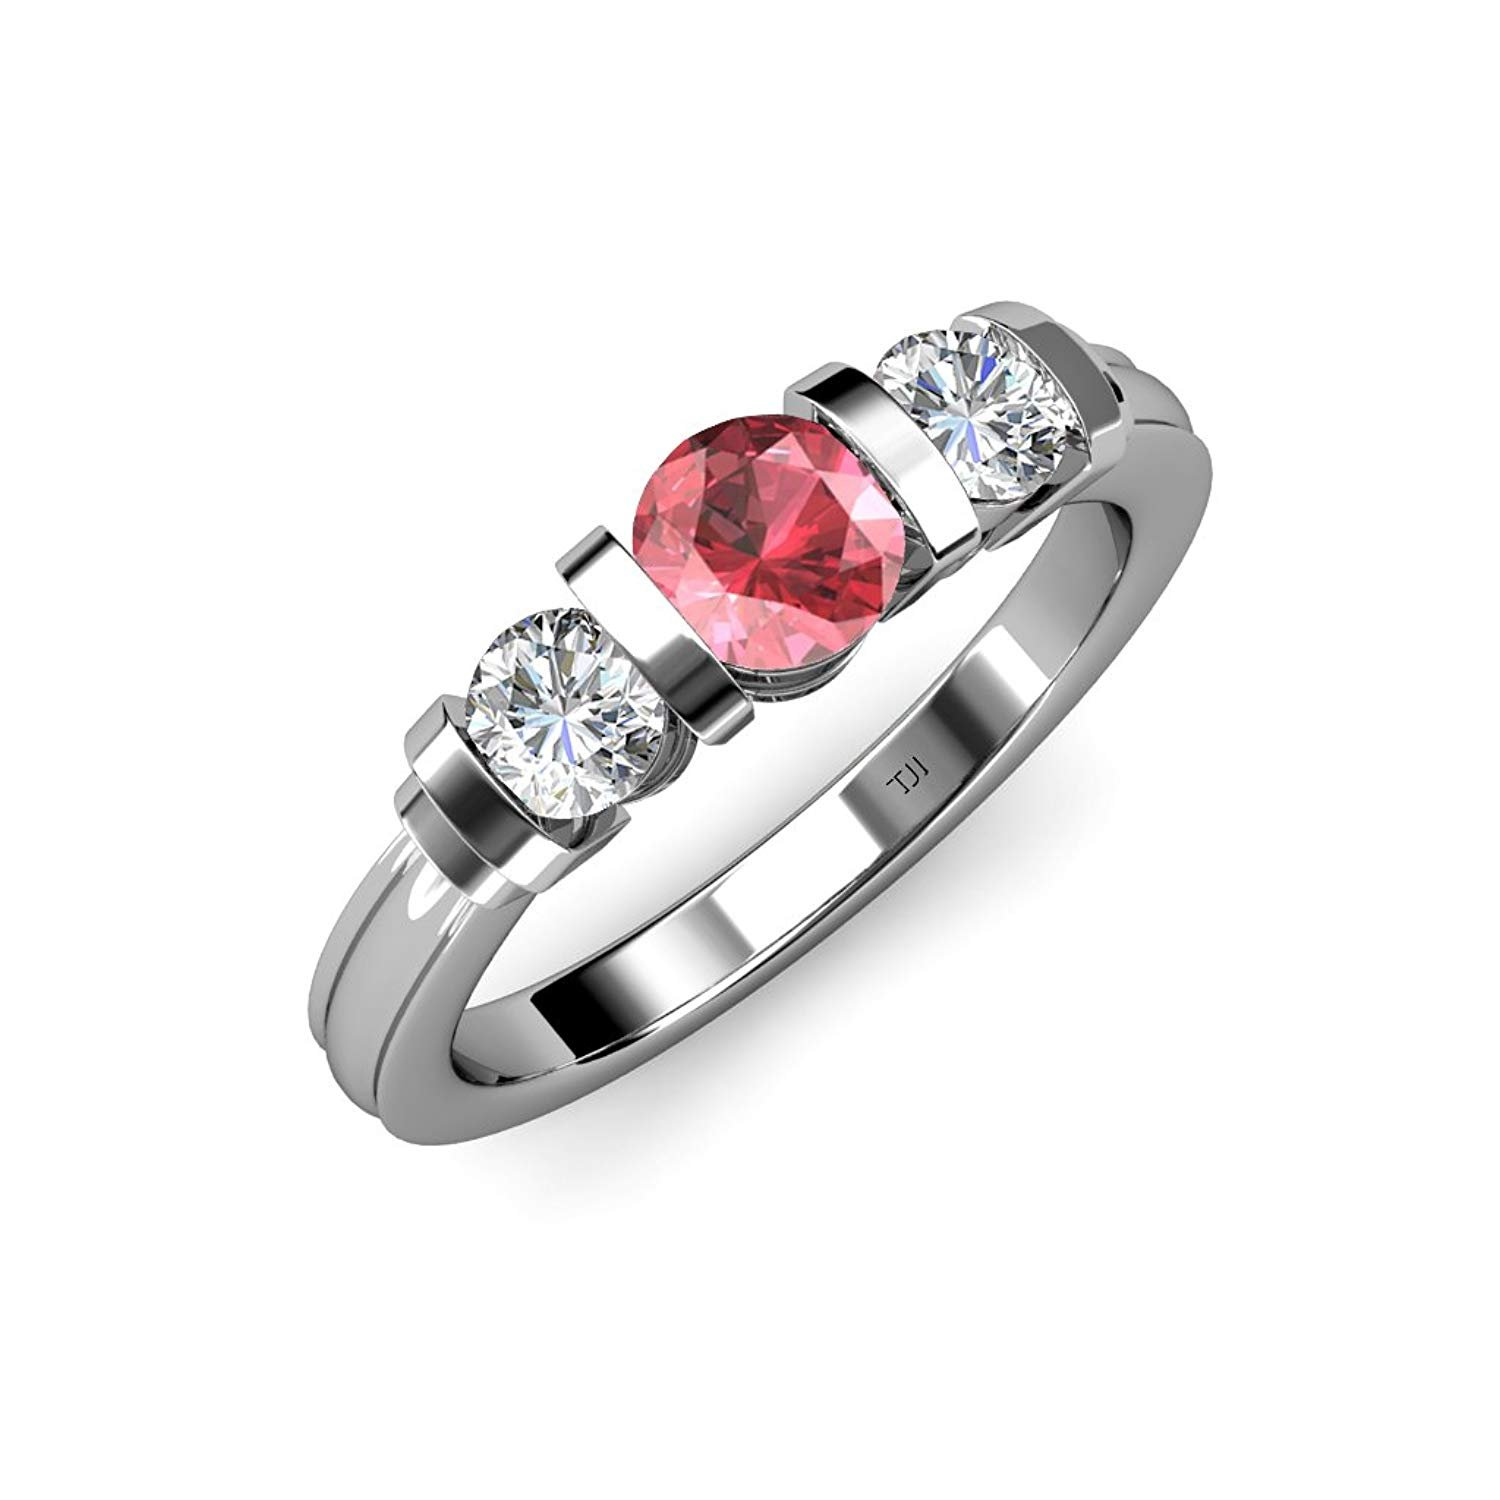 Pink Tourmaline and Diamond (SI2-I1, G-H) Bar Set Three Stone Ring 1.17 ct tw in 14K White Gold.size 6.5 by TriJewels